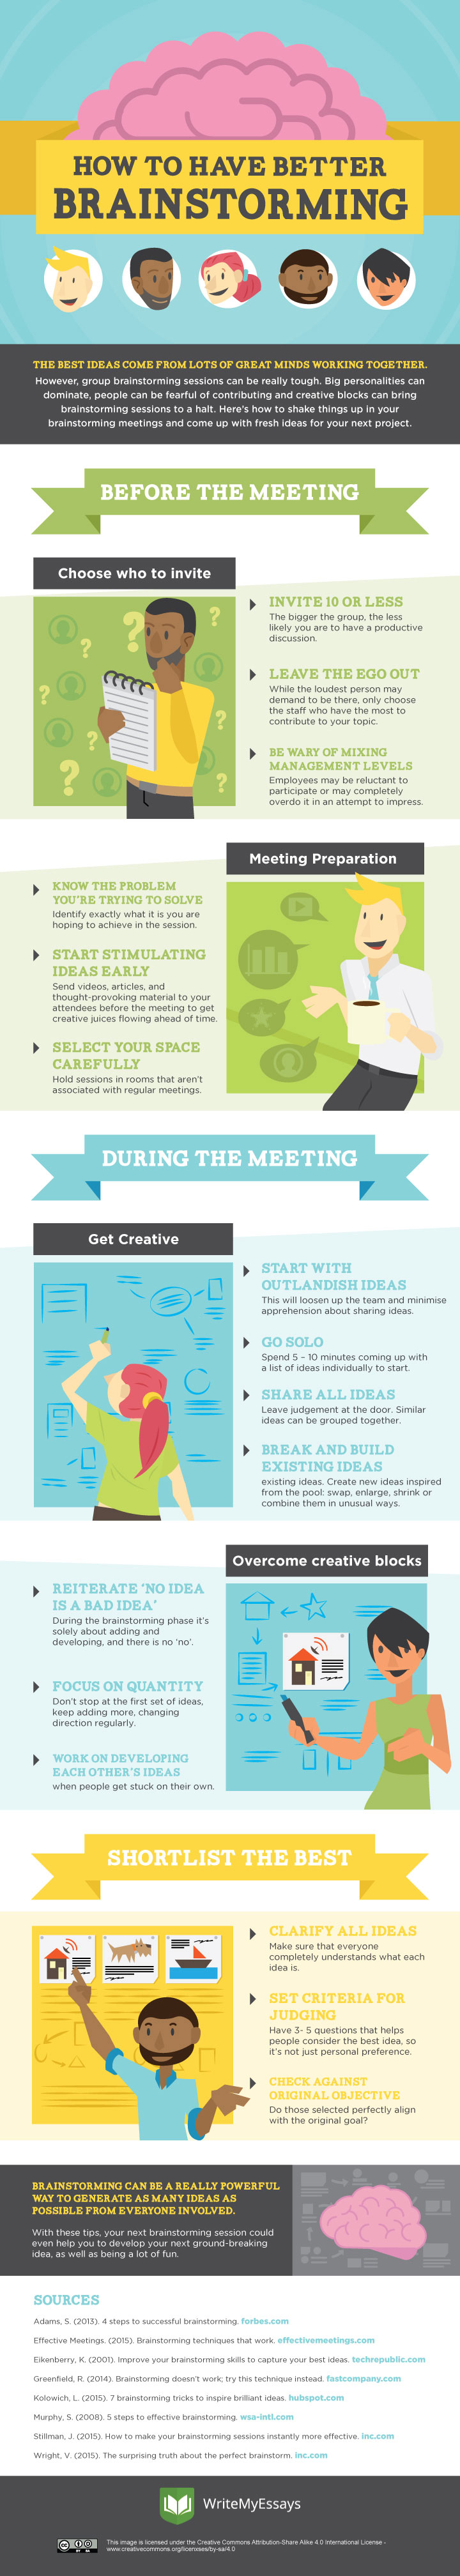 Secrets to better brainstorming [Infographic]